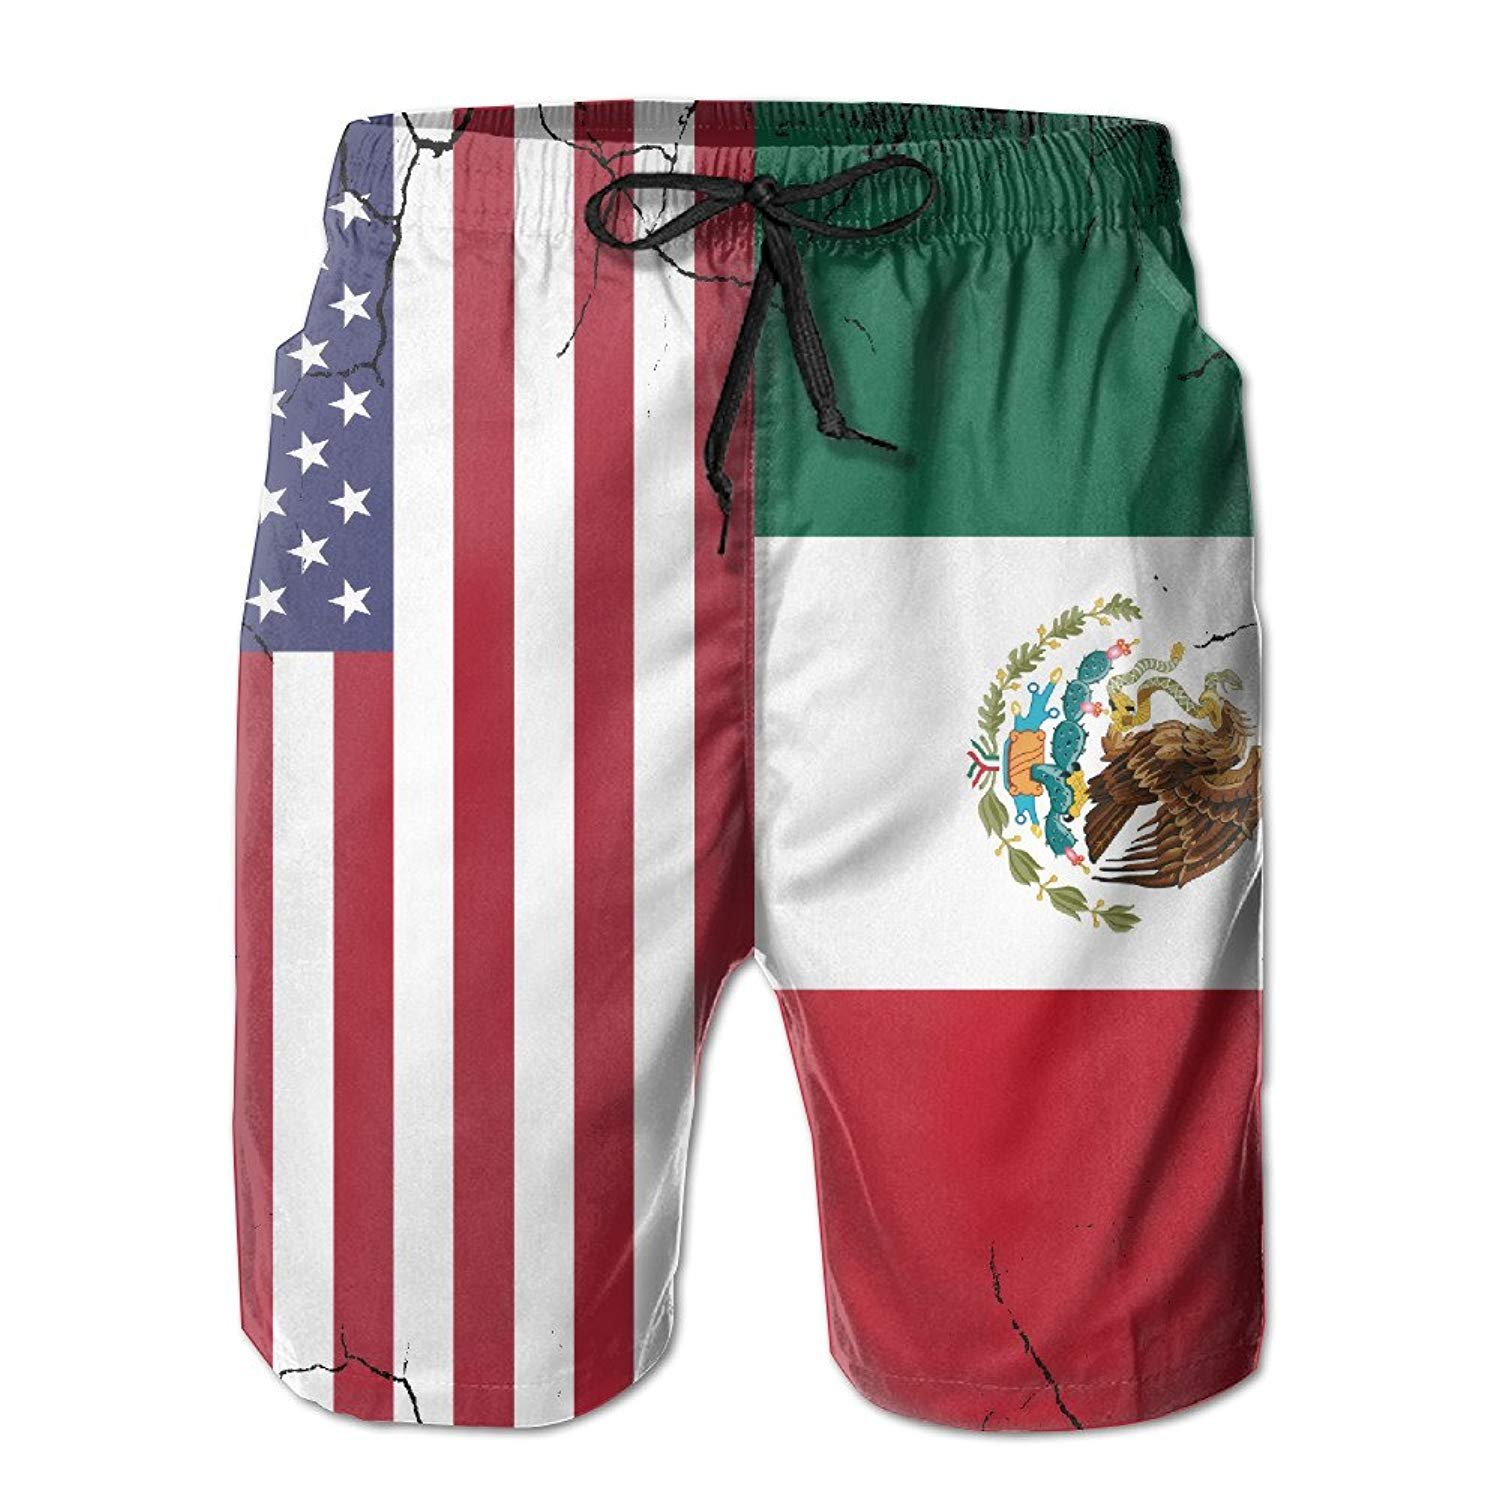 UNIQUE Pants Mexico Flag Mens Quick Dry Beach Board Shorts Summer Swim Trunks for Fathers Day for Boy Swimming